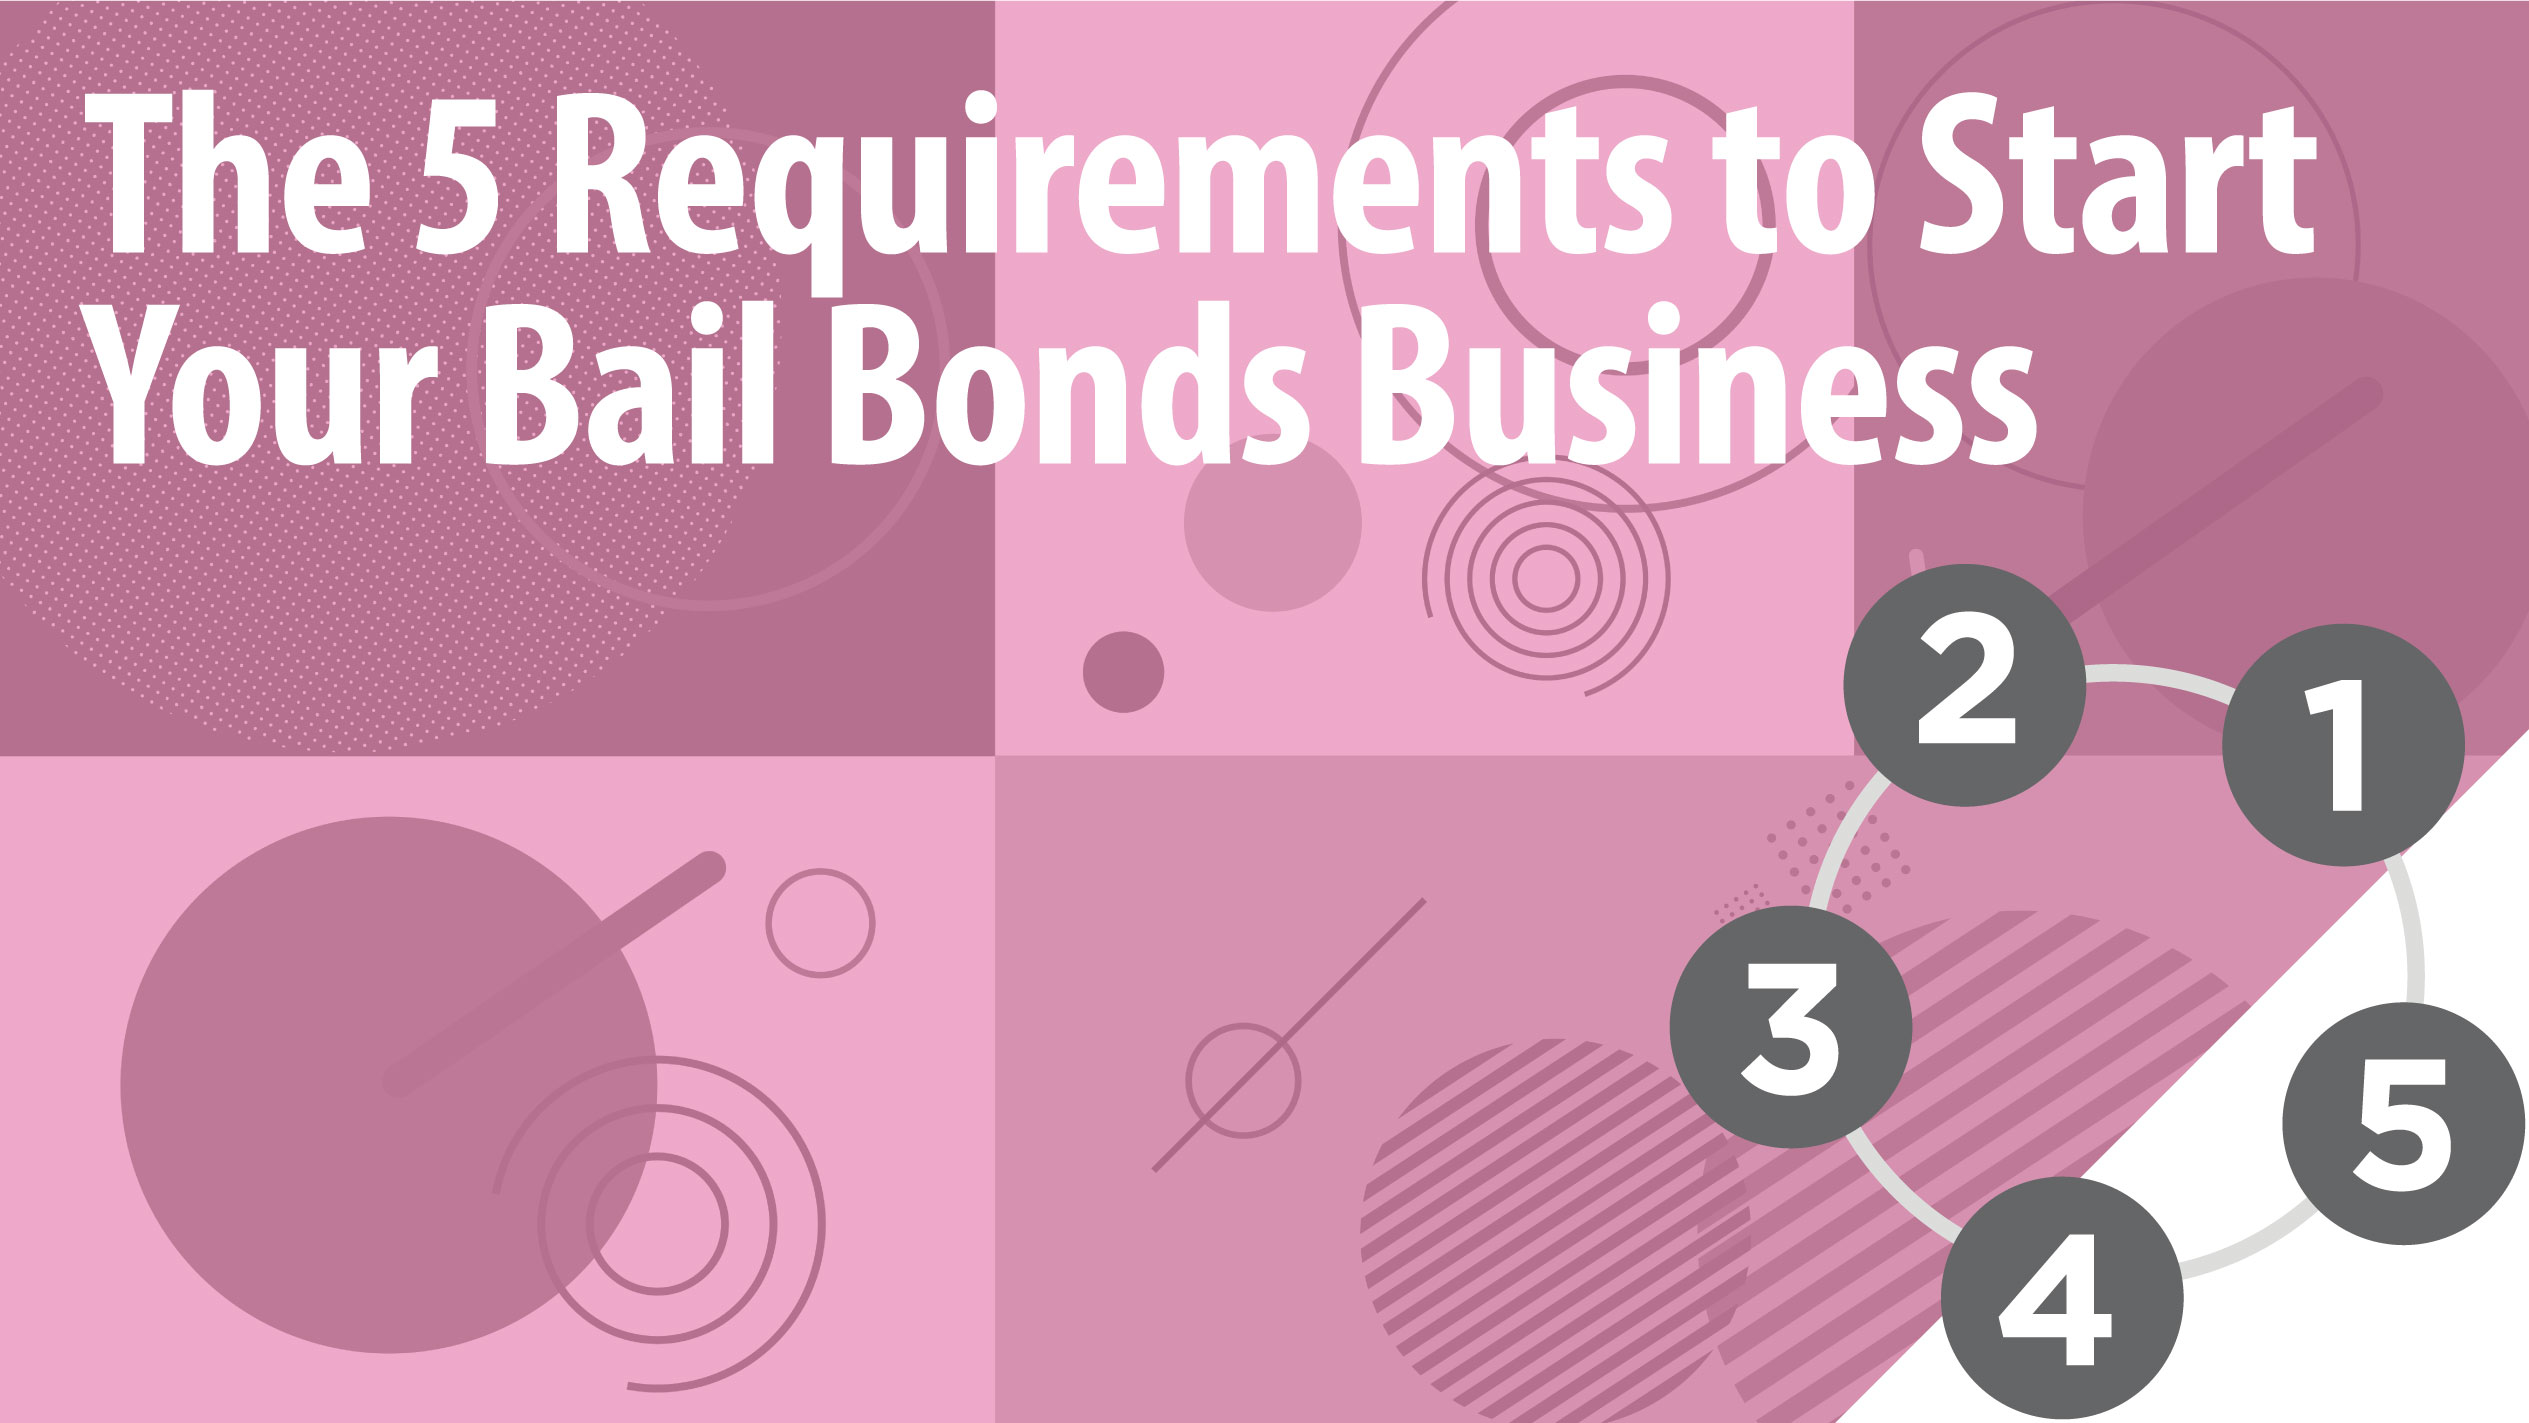 The 5 Requirements to Start Your Bail Bonds Business